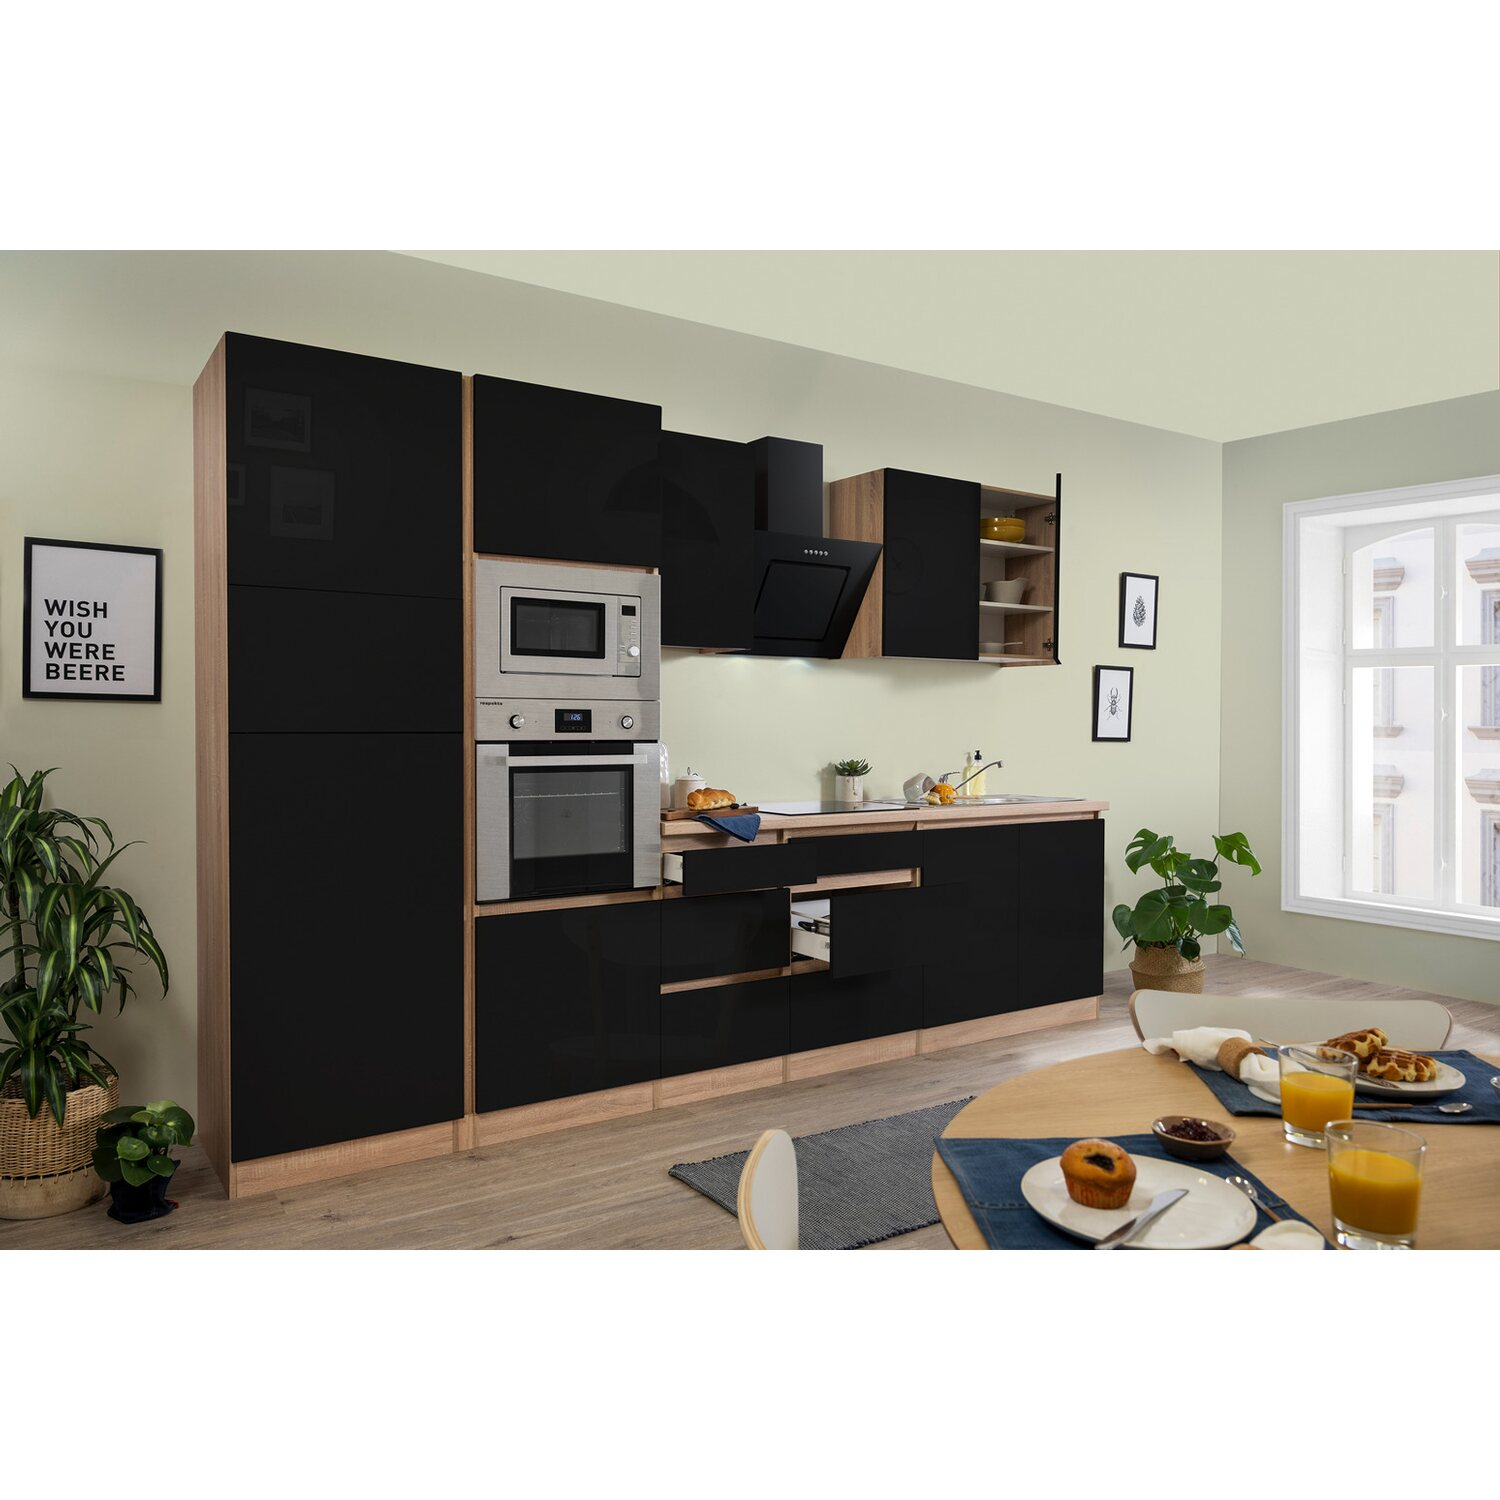 respekta premium k chenzeile grifflos 335 cm schwarz hochglanz eiche s gerau kaufen bei obi. Black Bedroom Furniture Sets. Home Design Ideas